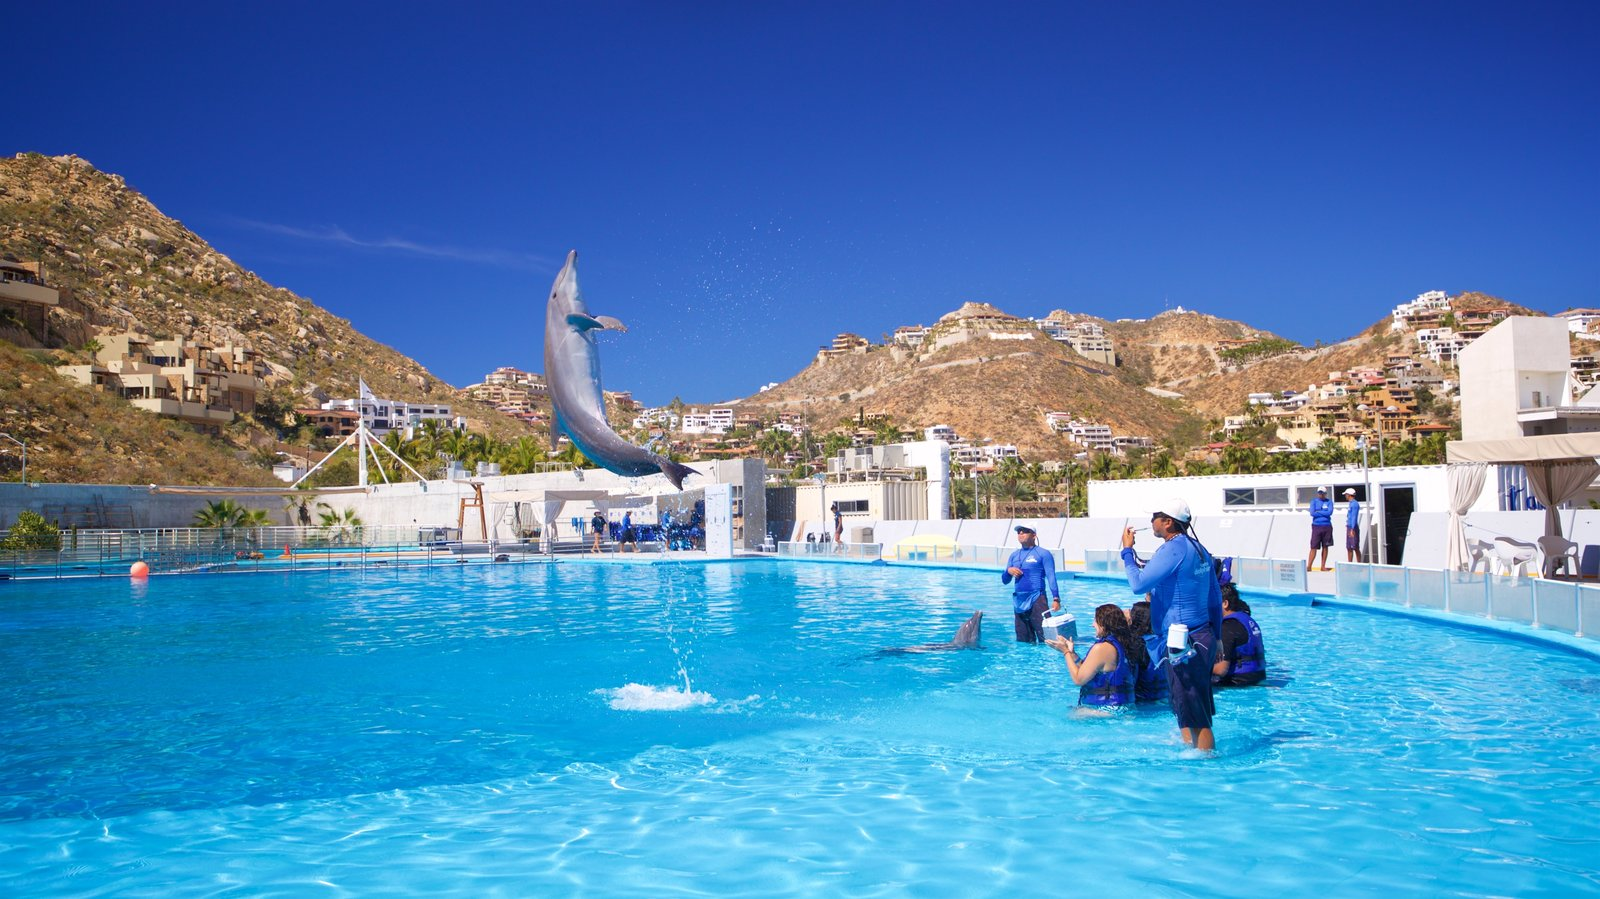 Cabo Dolphins featuring a pool and marine life as well as a small group of people